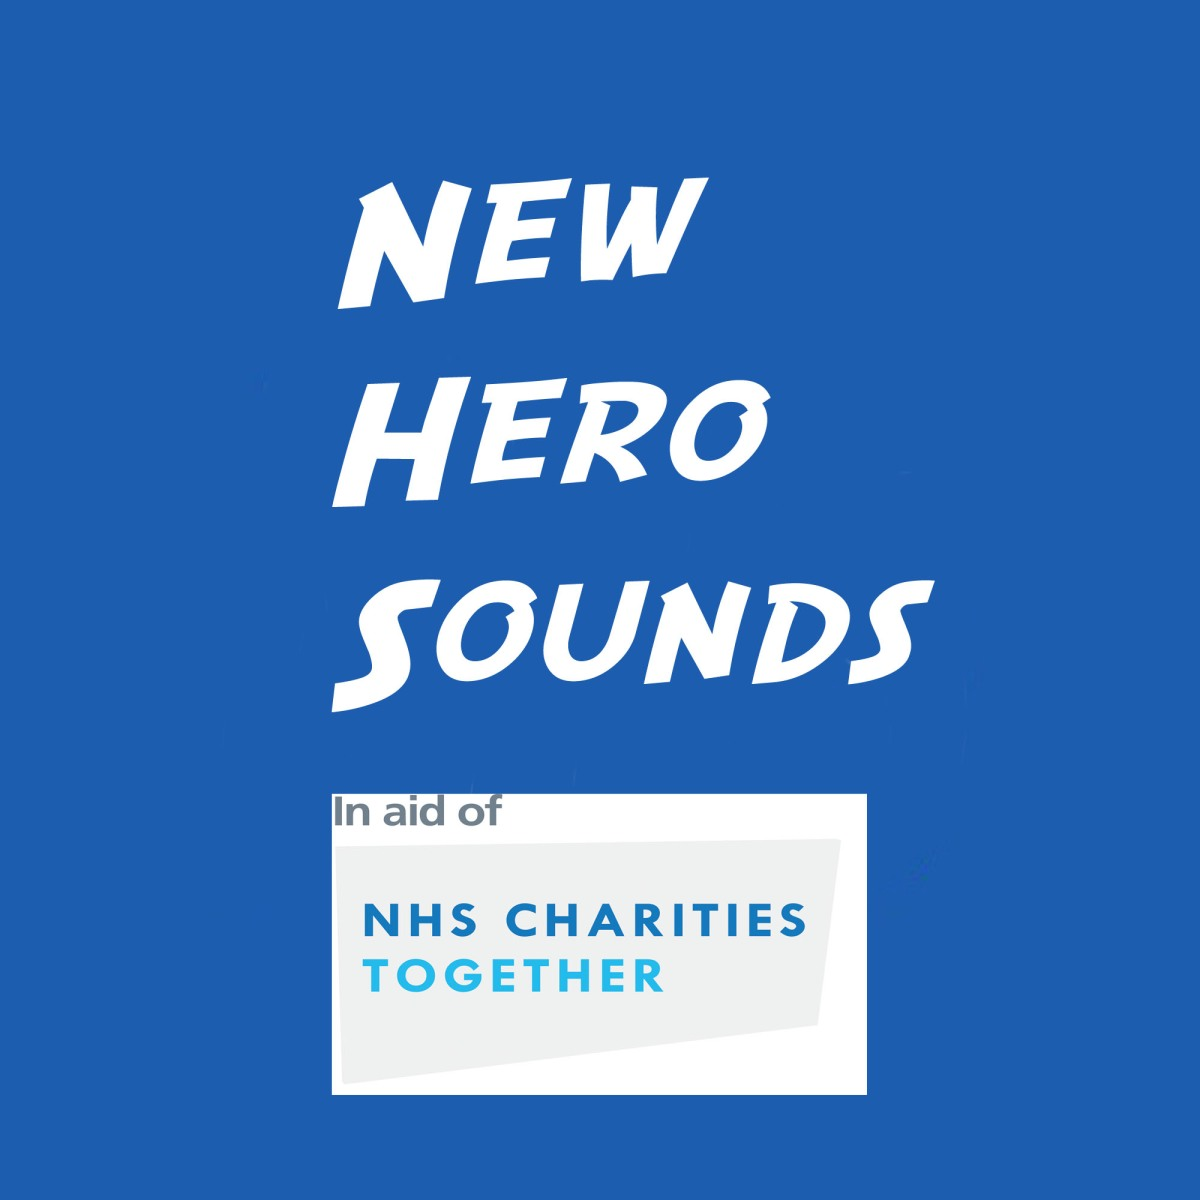 ScreamLite's New Hero Sounds for NHS Charities Together